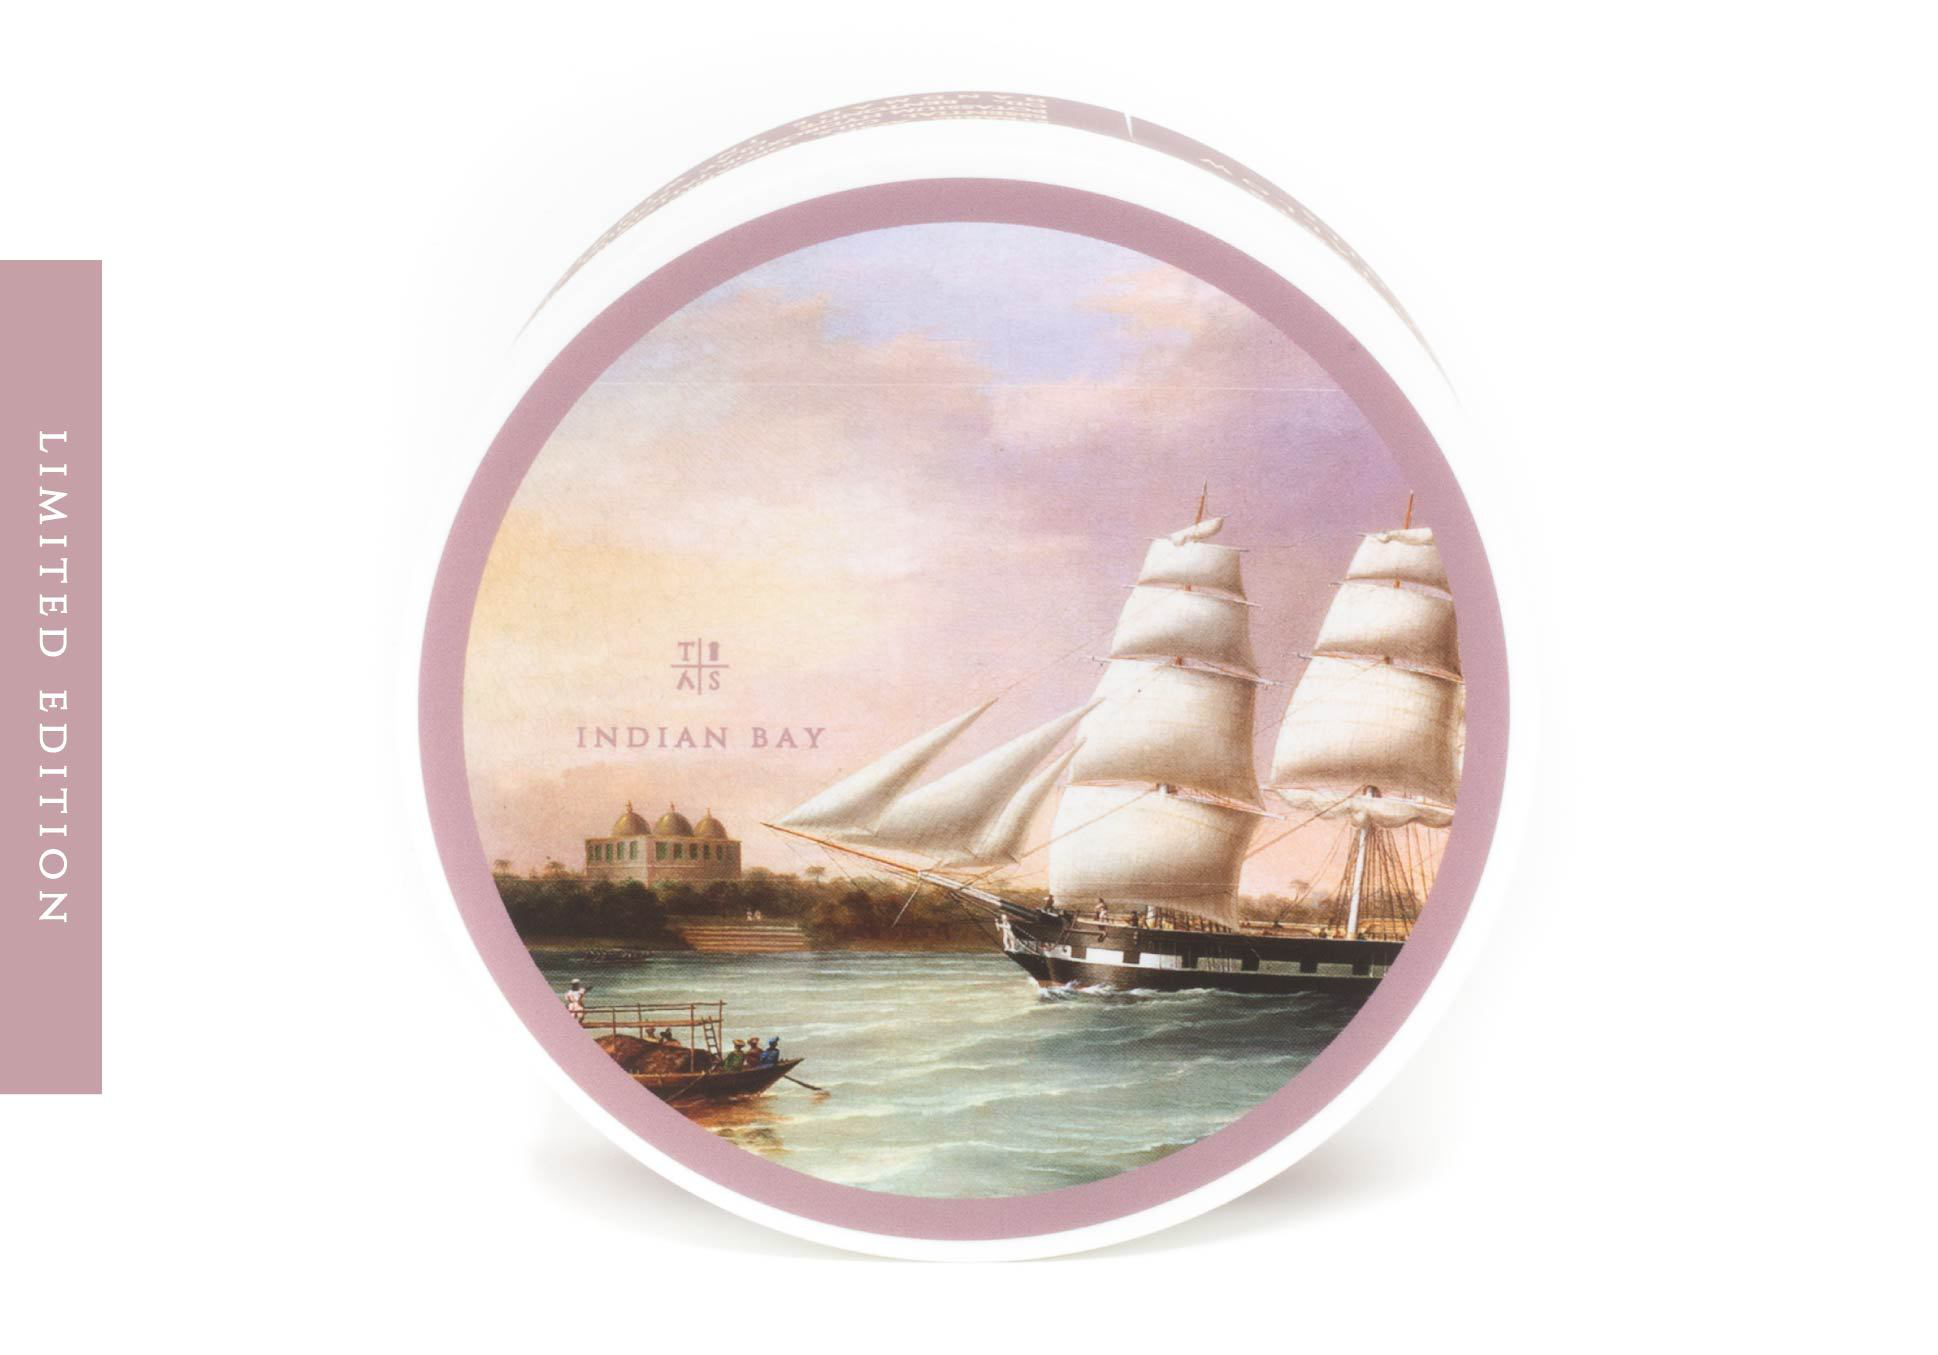 Tallow + Steel - Indian Bay - Soap image